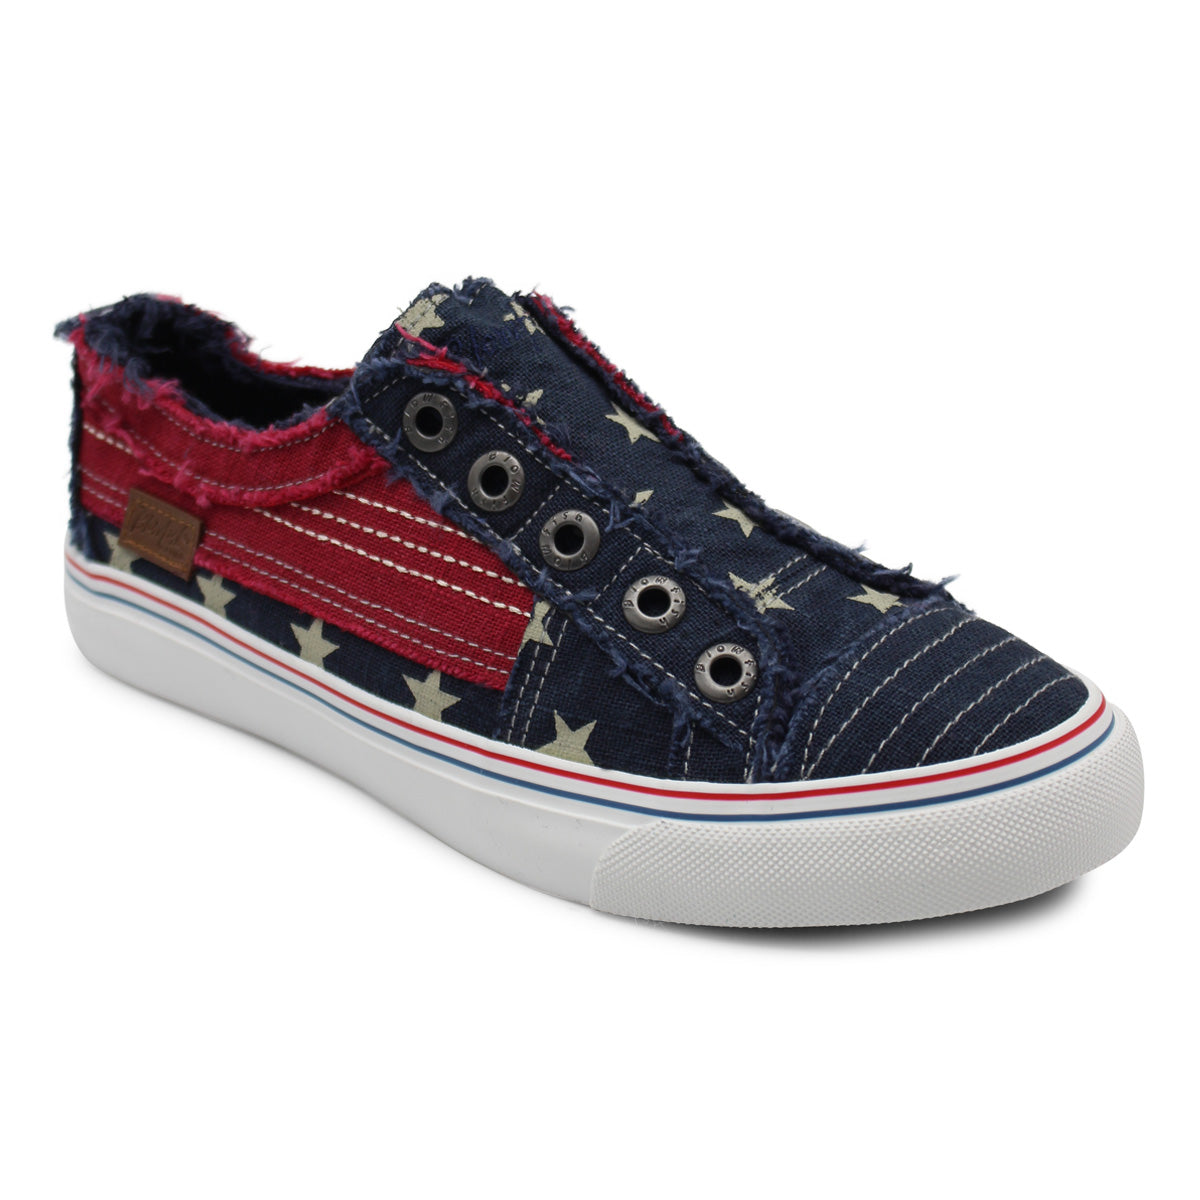 'Blowfish Malibu' Play ZS-0061 584 - Slip-on Shoe - Navy Stars Striped